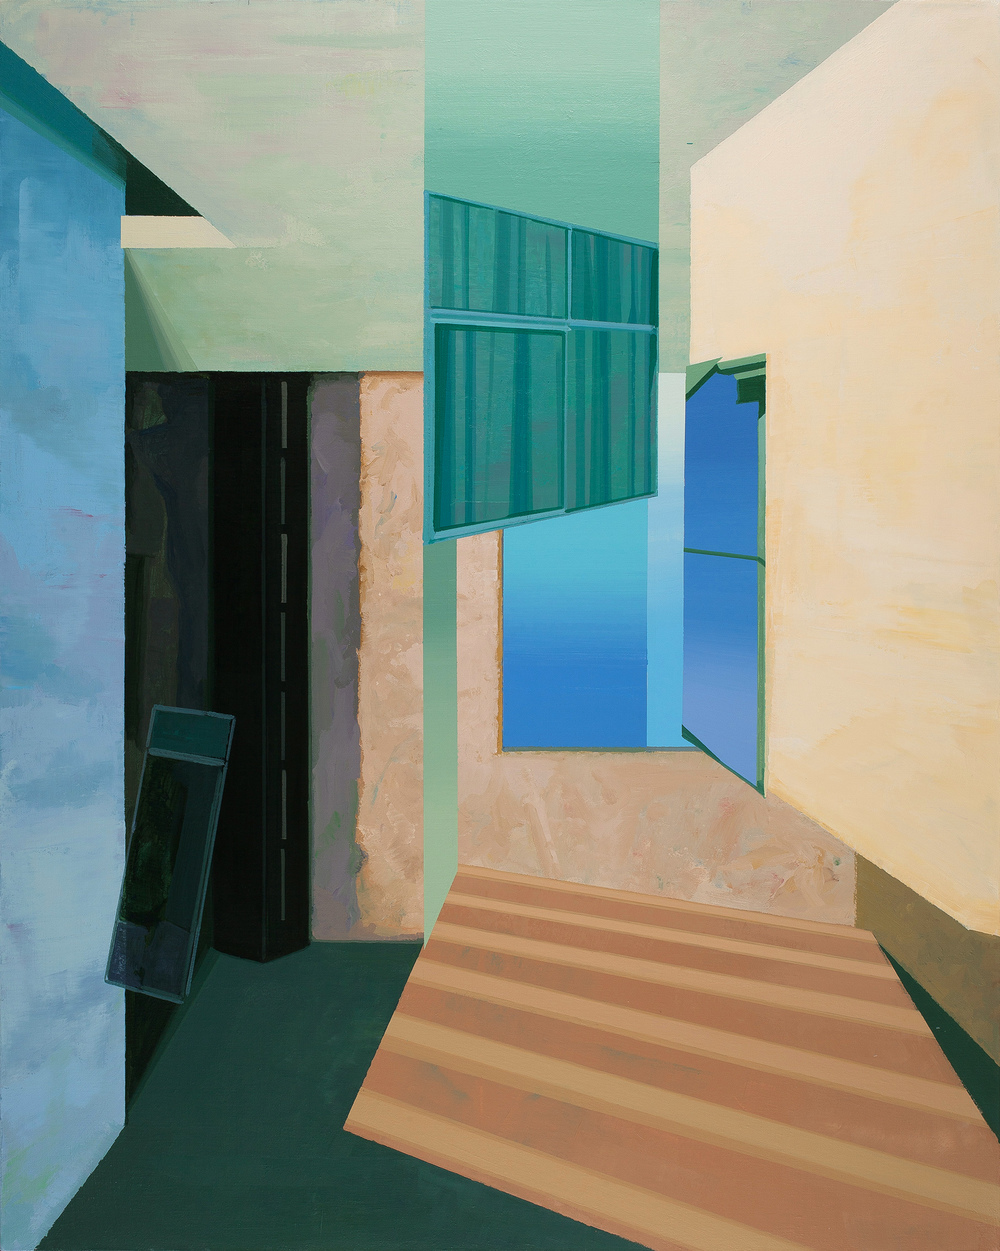 Hou Yong 侯勇, Tilted Wall-05 倾斜的墙-05, 2014, Acrylic on canvas 布面丙烯, 150 x 130cm